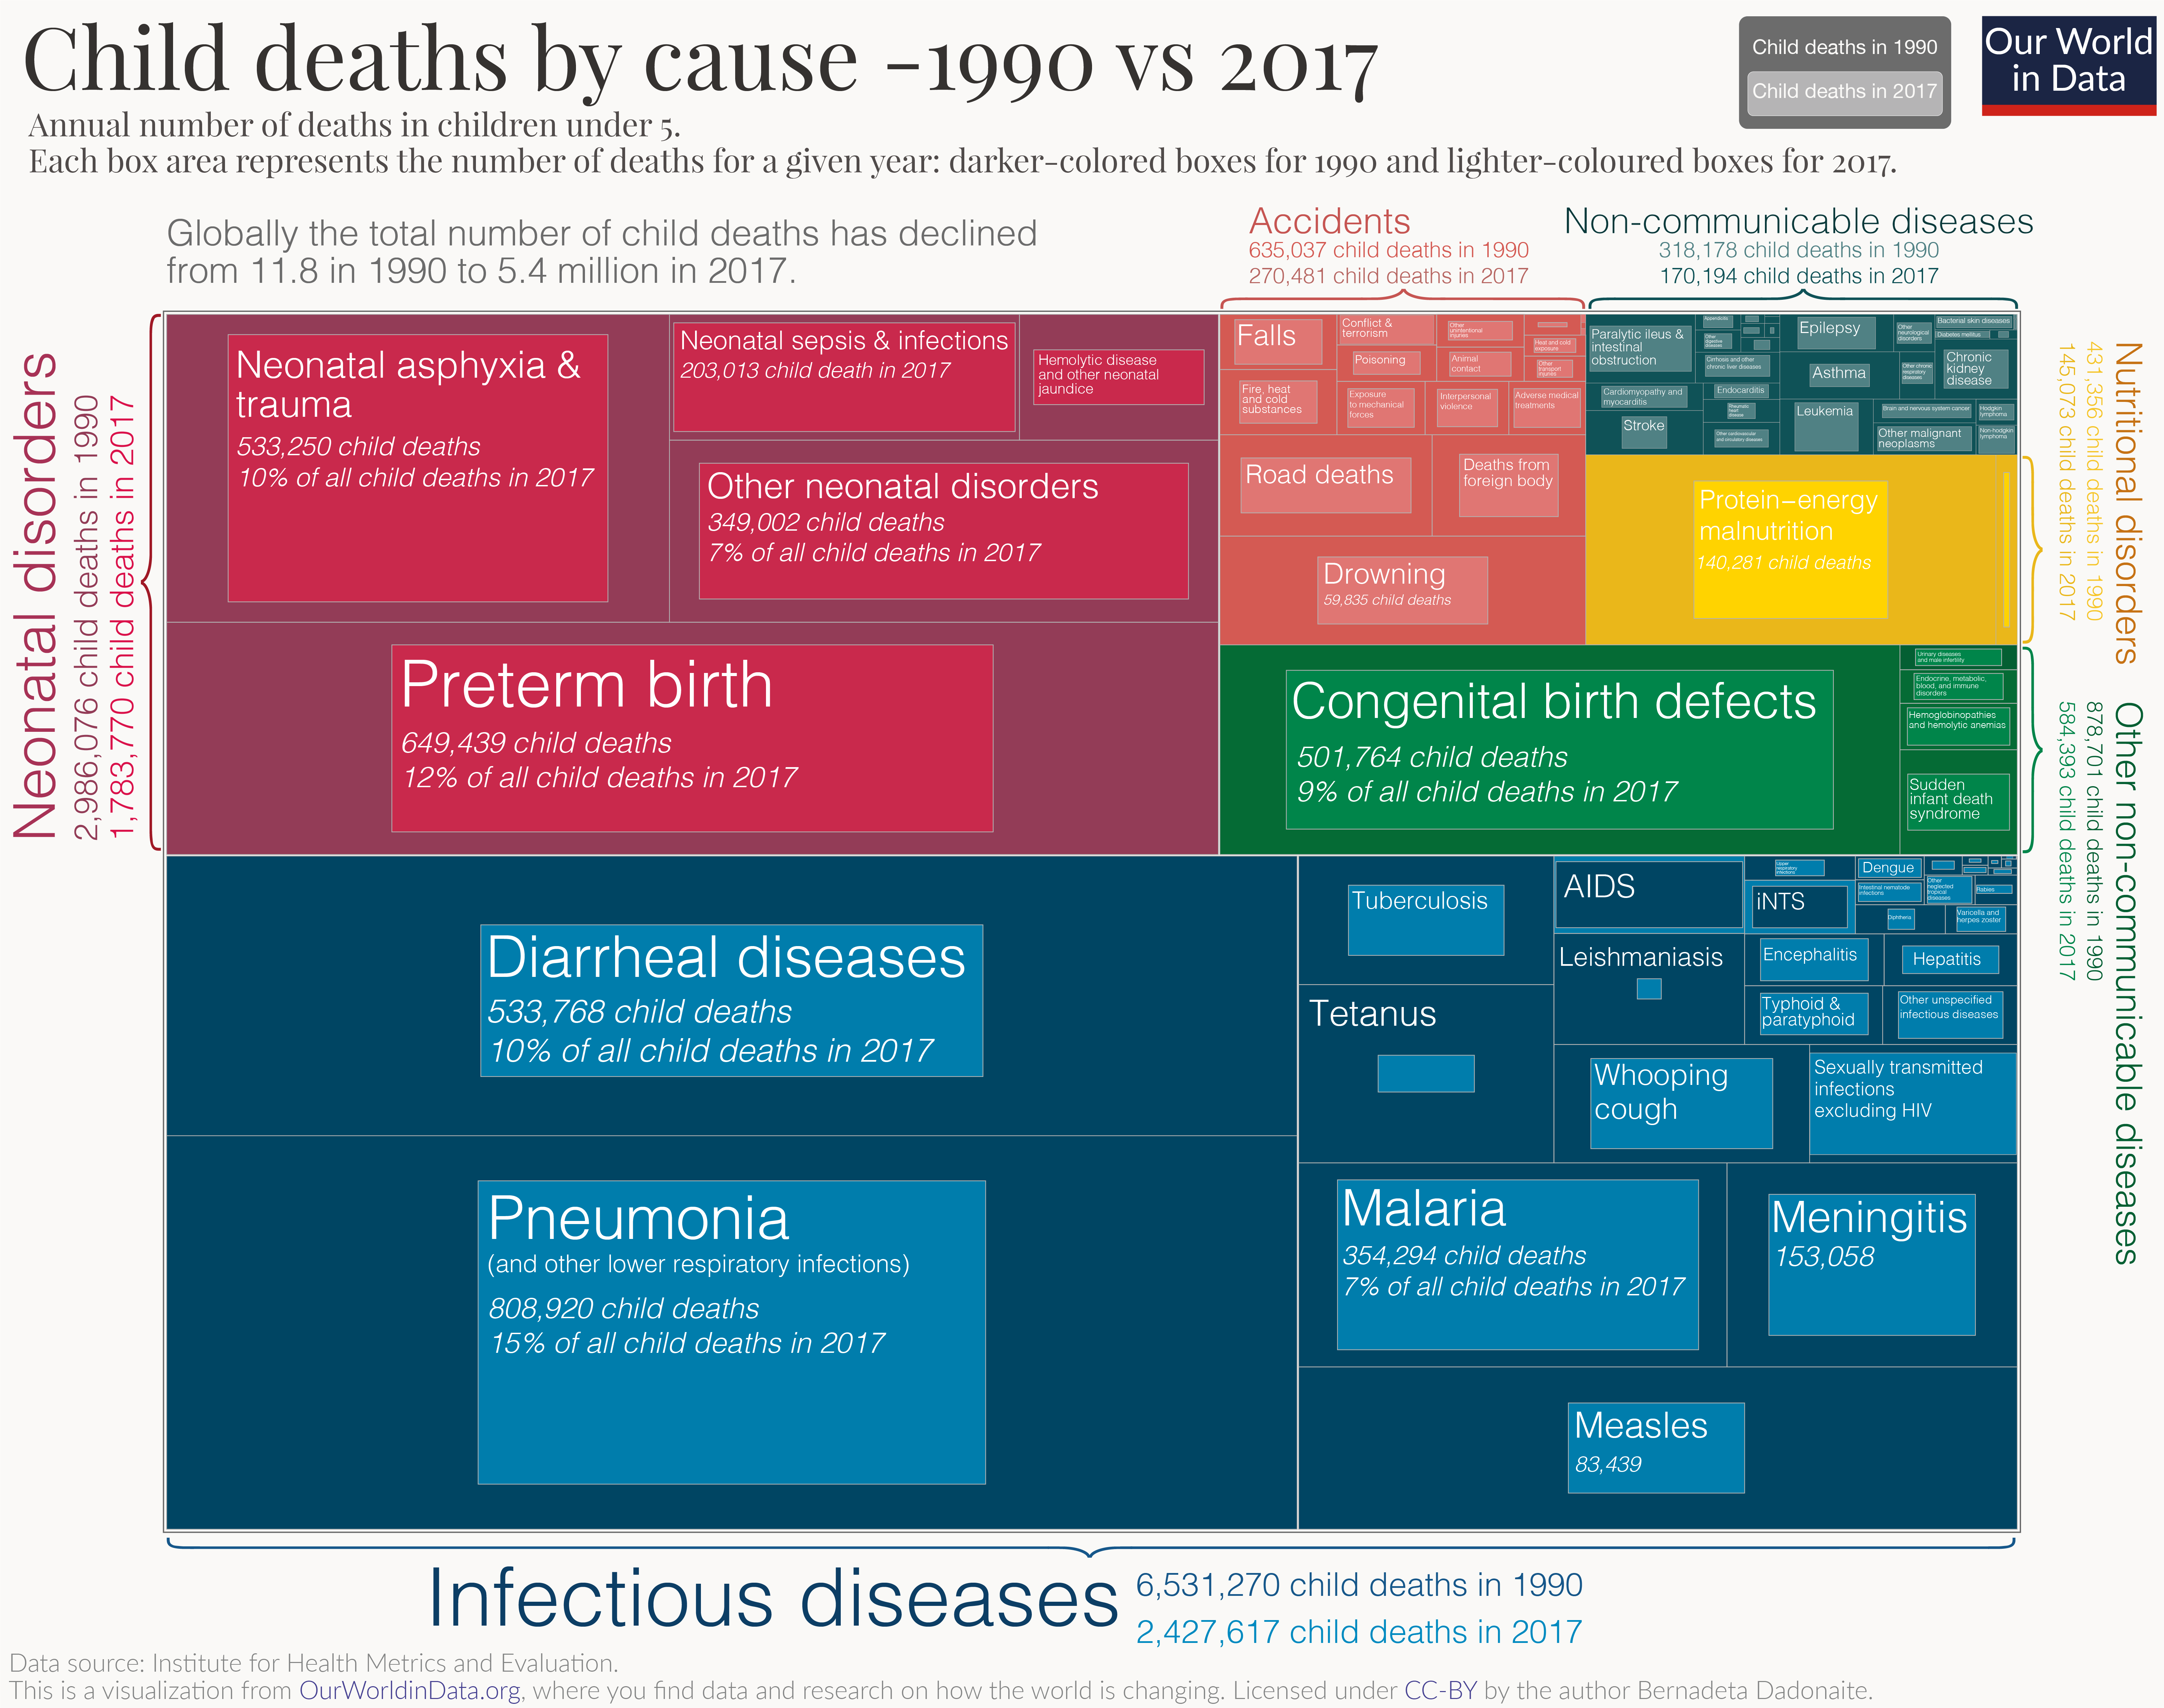 Child deaths by cause - 1990 vs 2017